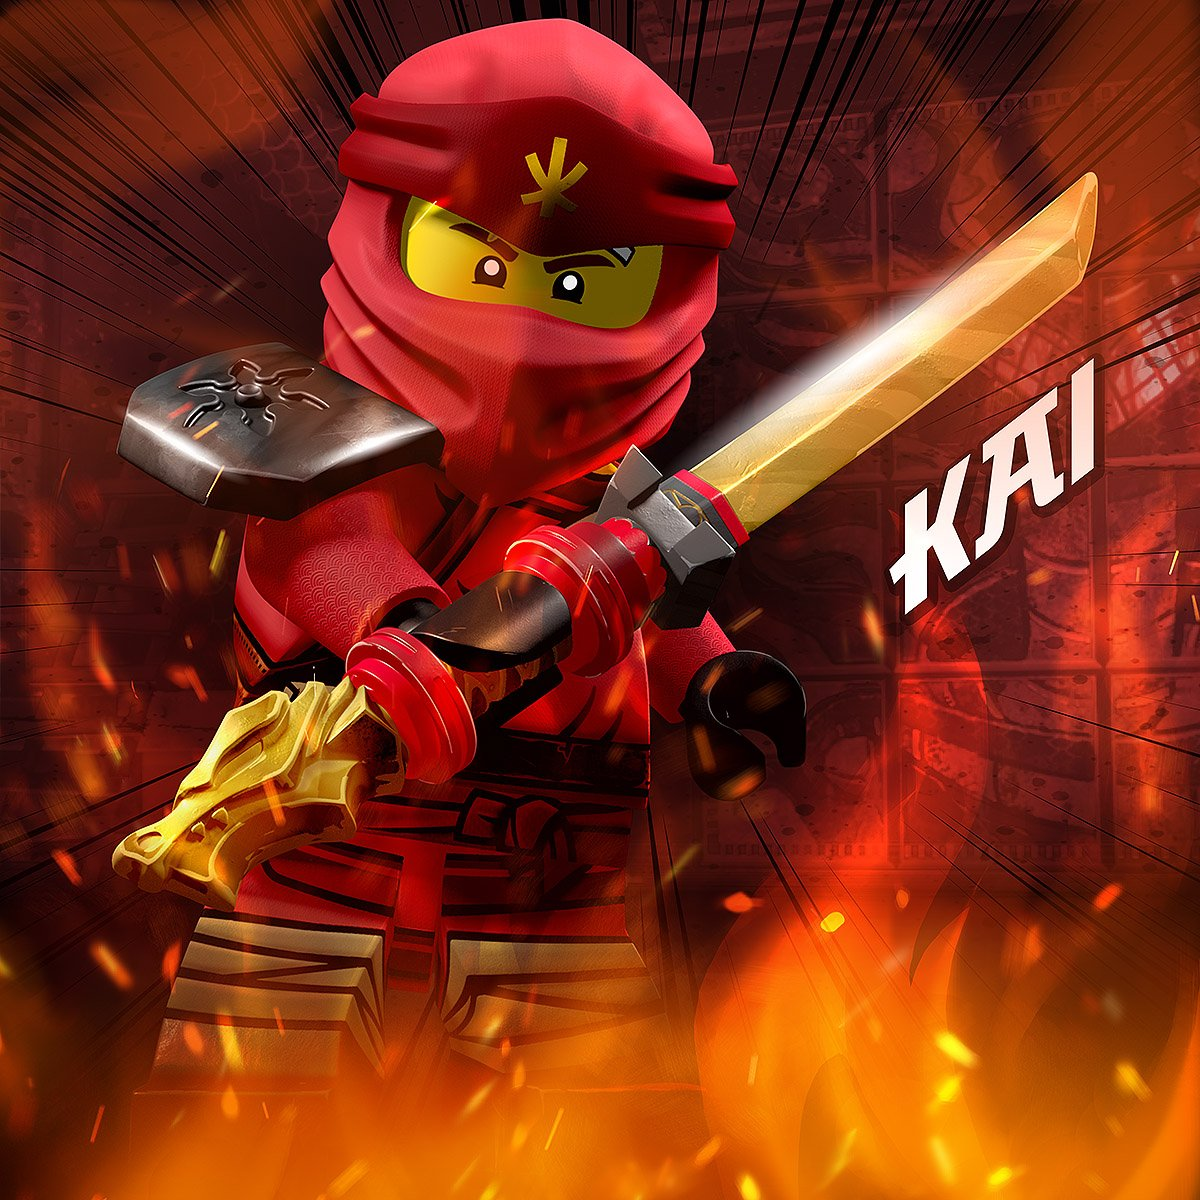 Kai | Ninjago Wiki | FANDOM powered by Wikia